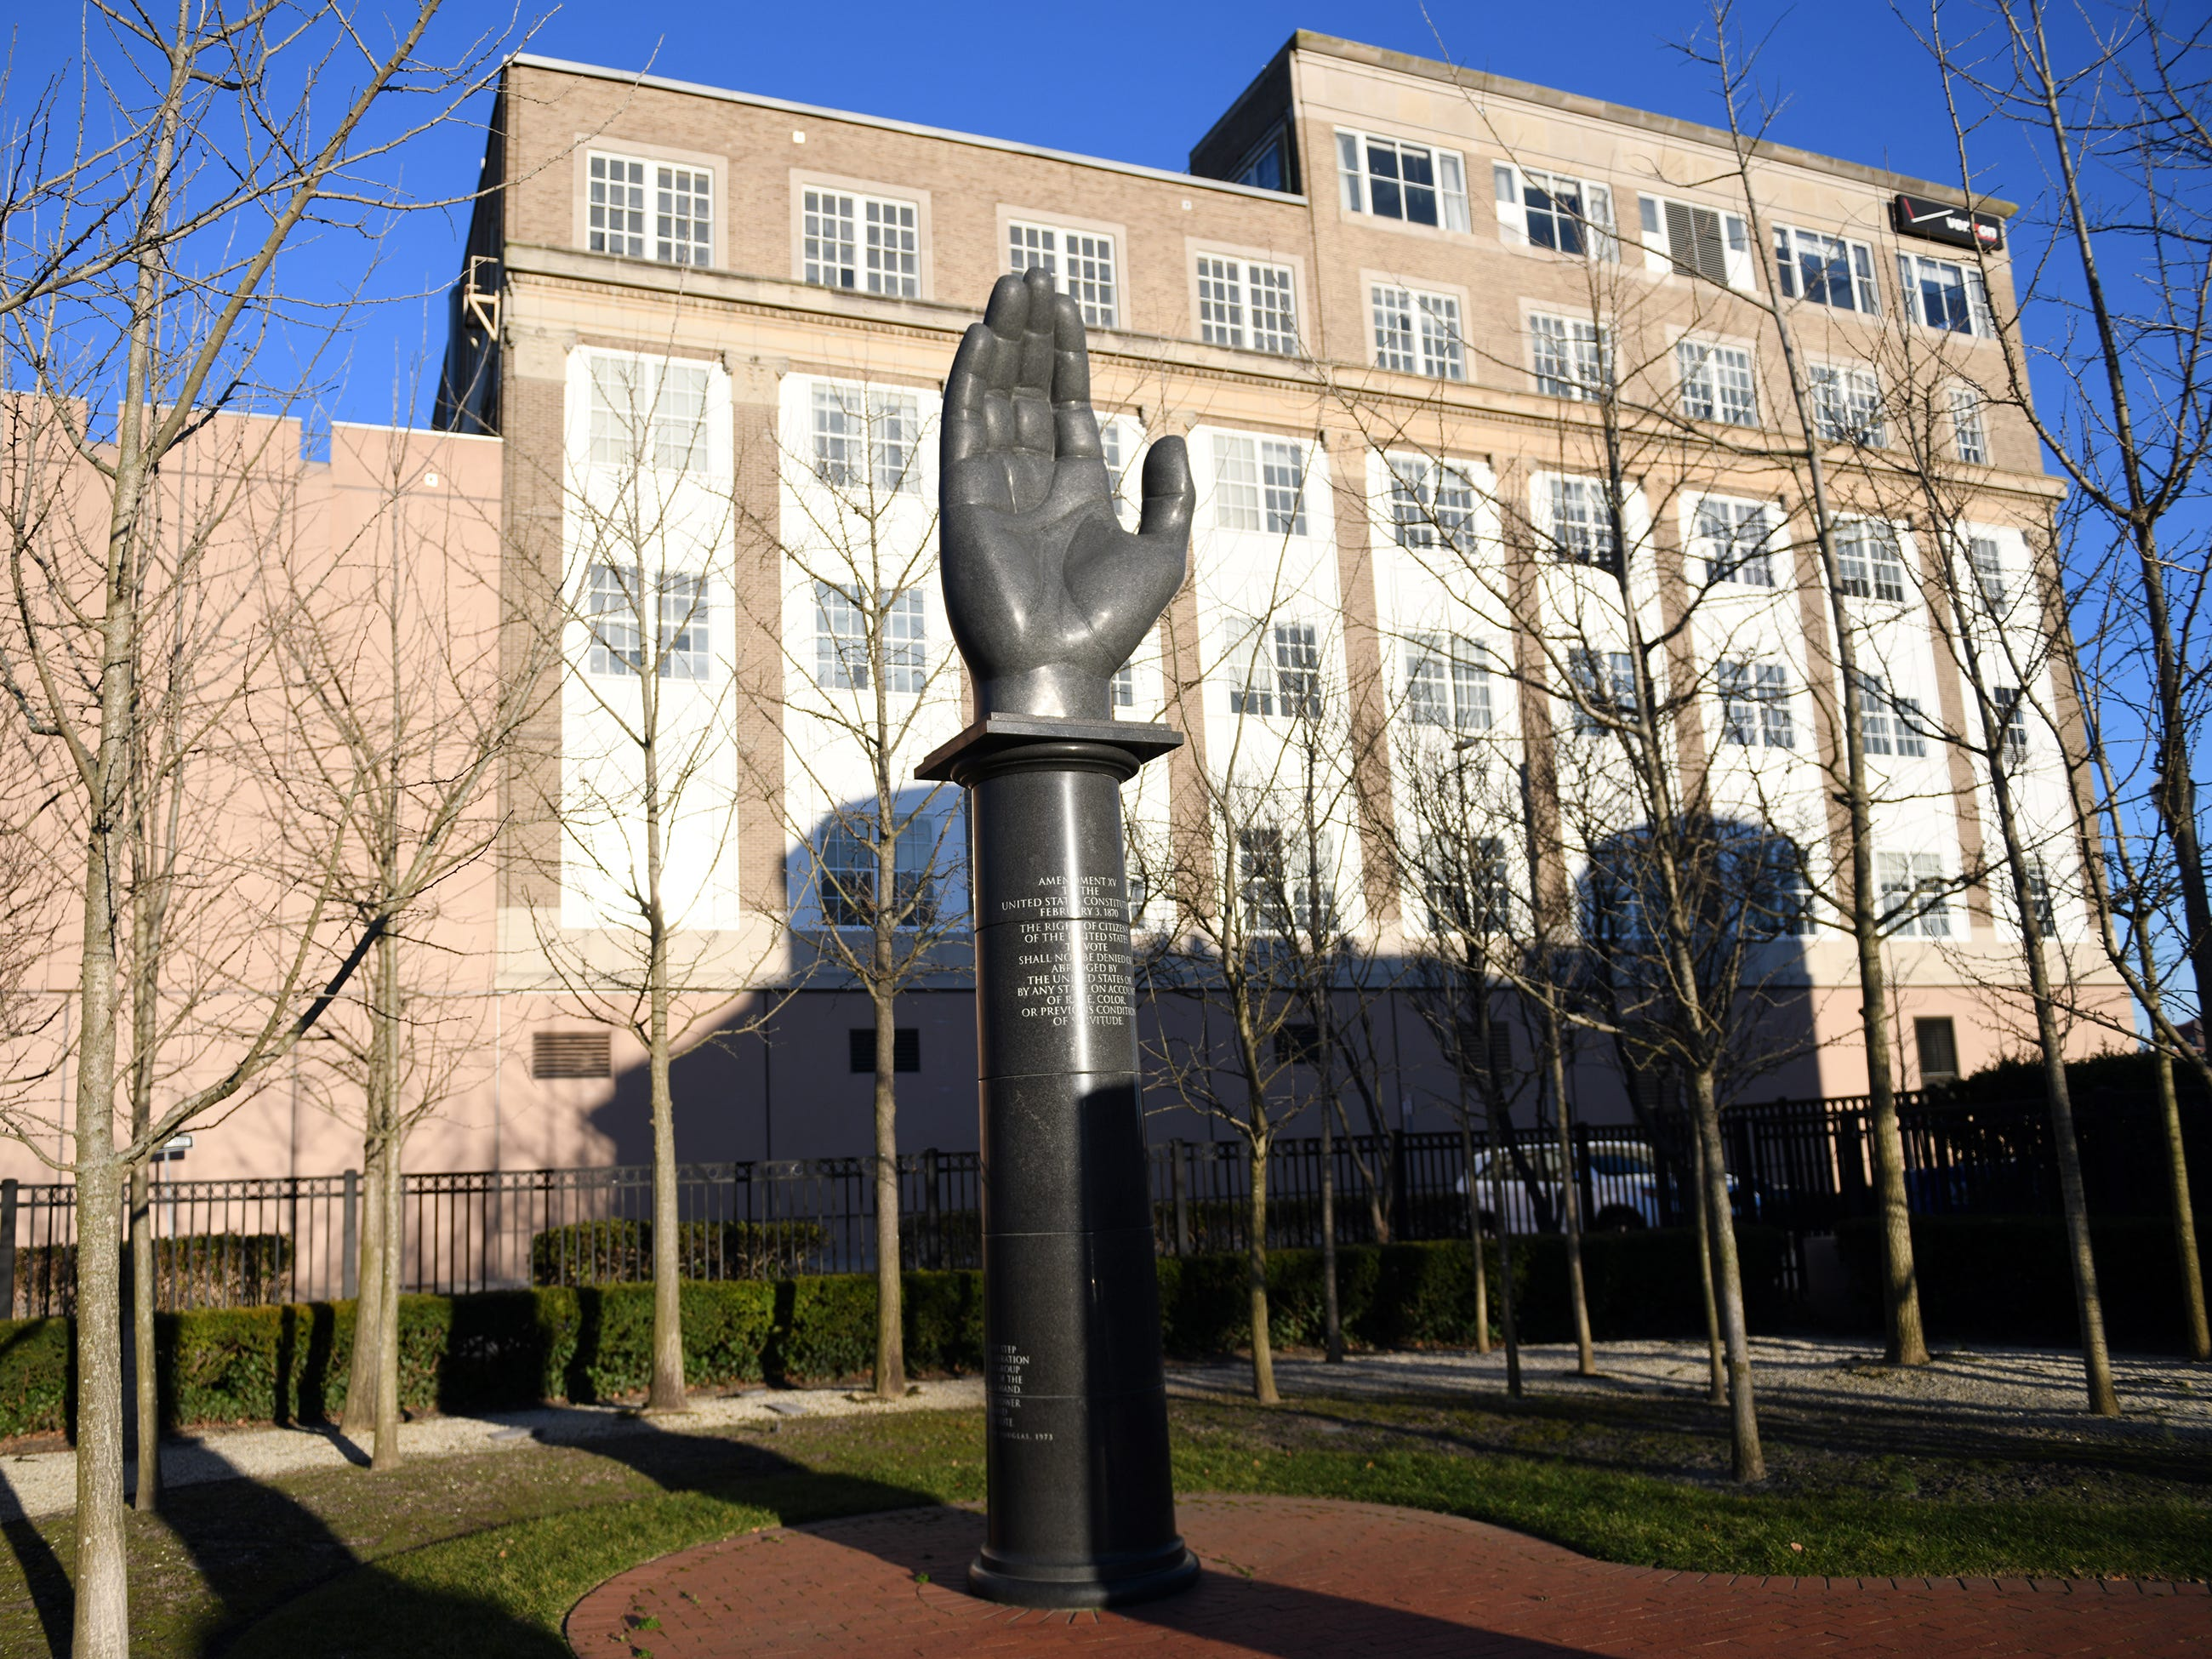 A upraised hand sits atop a black granite column, quarried in Africa, within The Civil Rights Garden in Atlantic City. The hand symbolizes the democratic right to vote and for all Americans to participate in the electoral process.